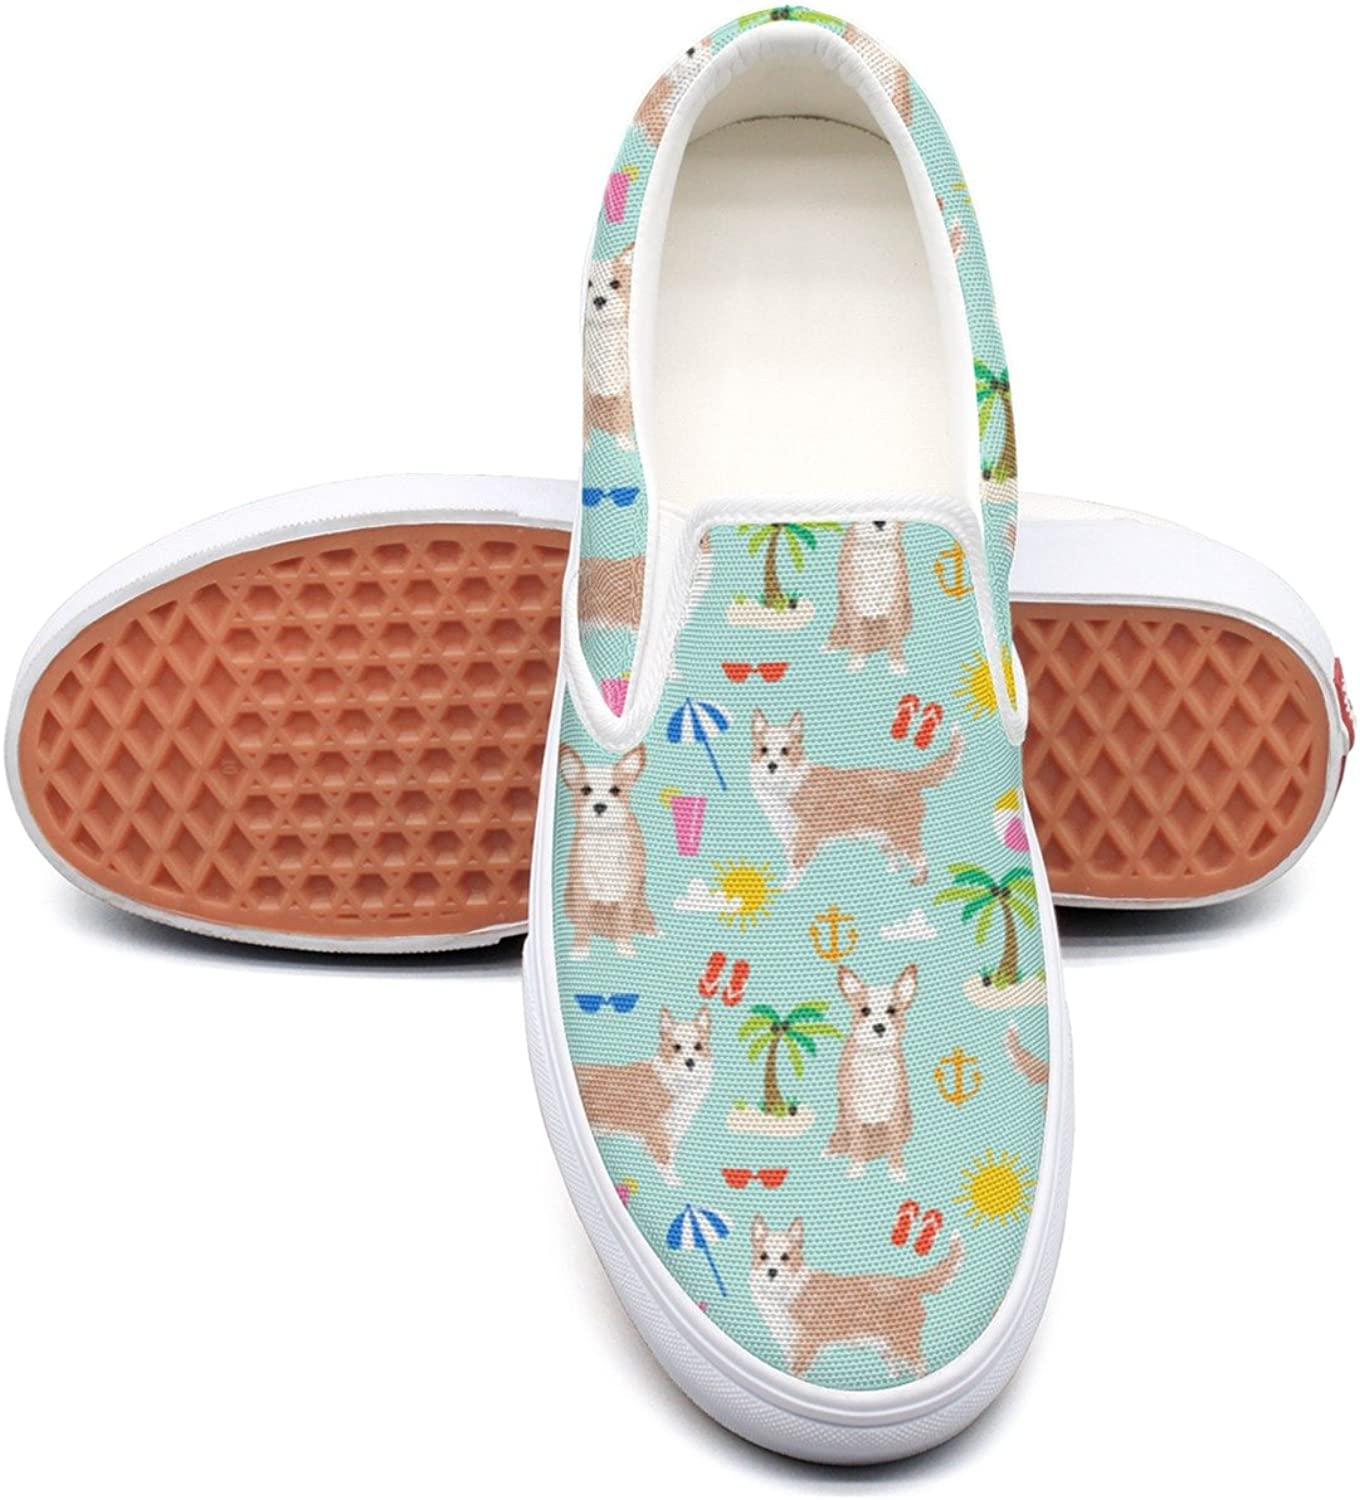 Hjkggd fgfds Casual Beach Portuguese Podengo Dogs Beautiful Women Canvas shoes